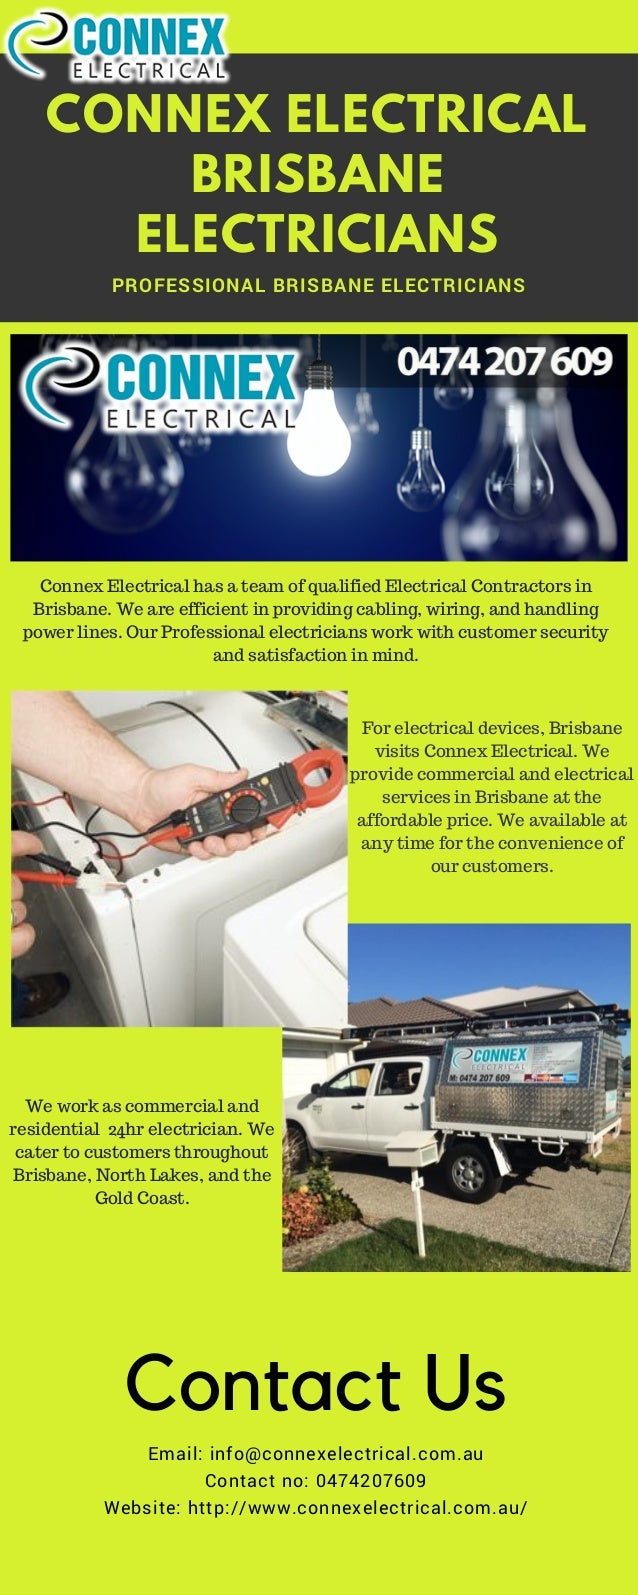 24hr Electrician Commercial Motor Wiring Professional Brisbane Electricians Connex Electrical Has A Team Of Qualified Elect